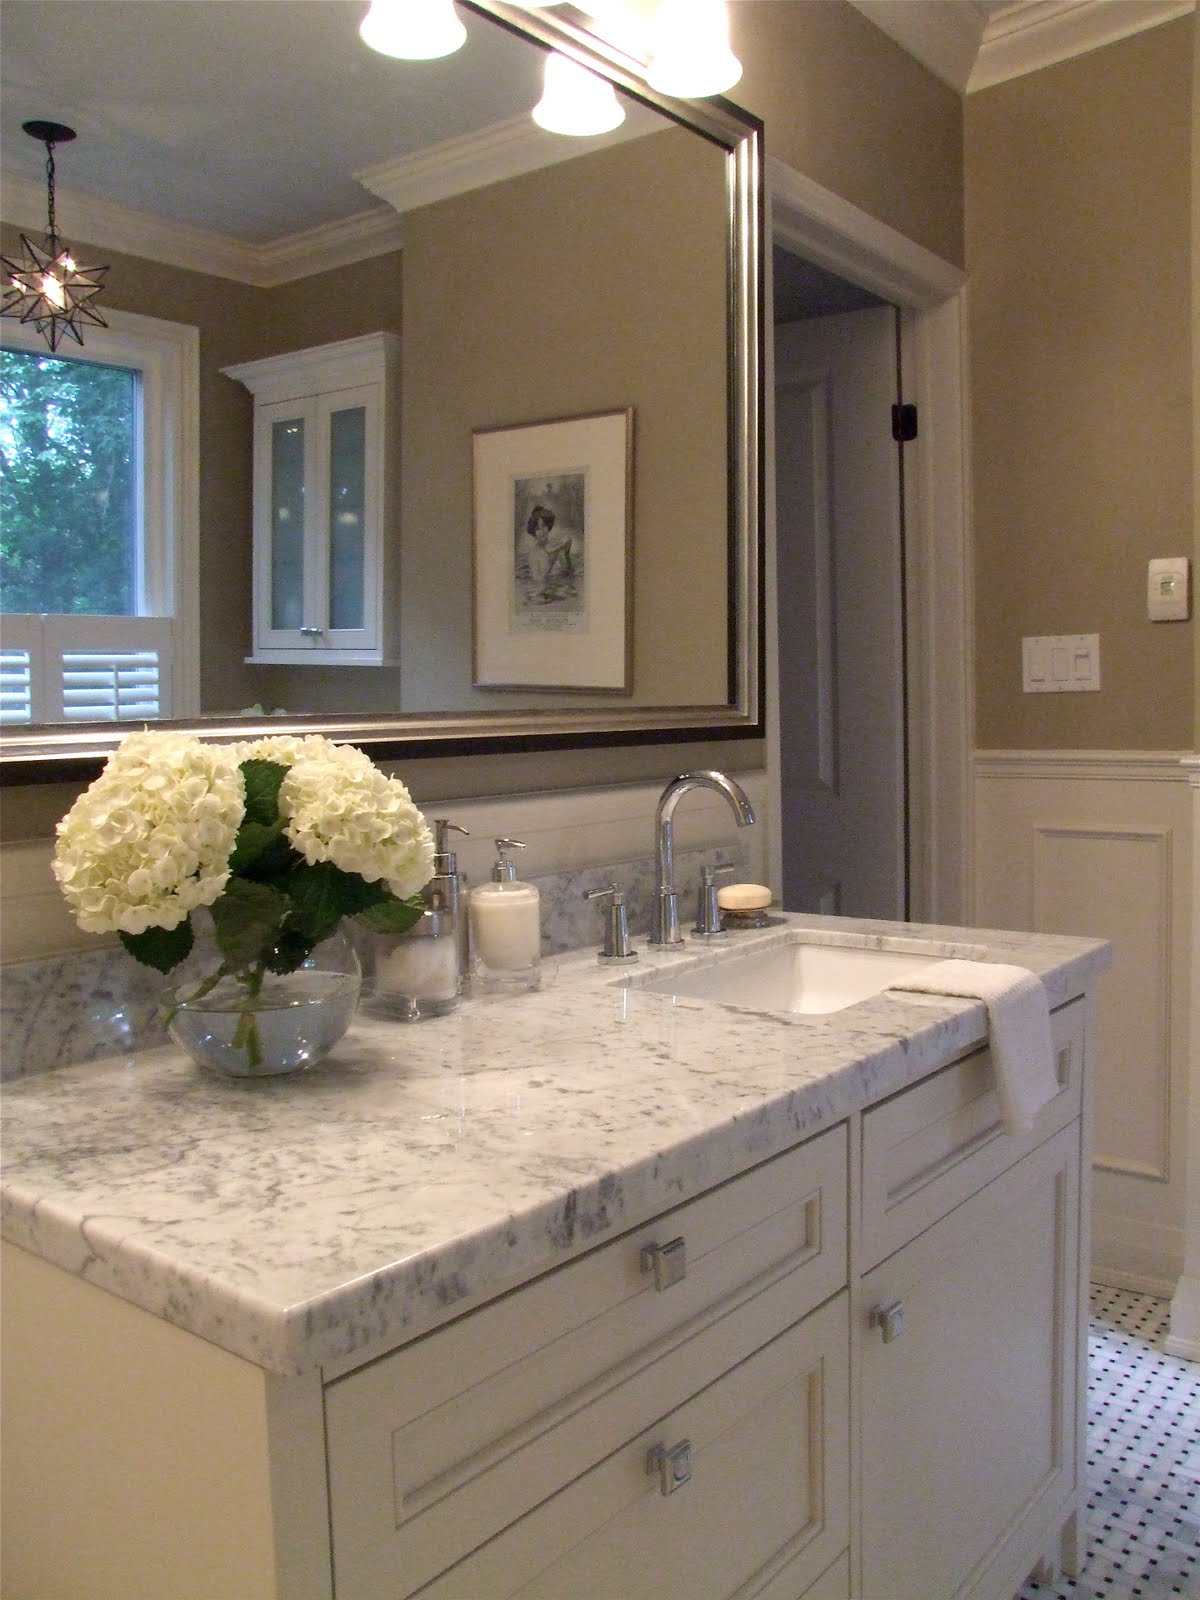 YOUR DREAM HOUSE: After: E-Design Bathroom Project Part 2